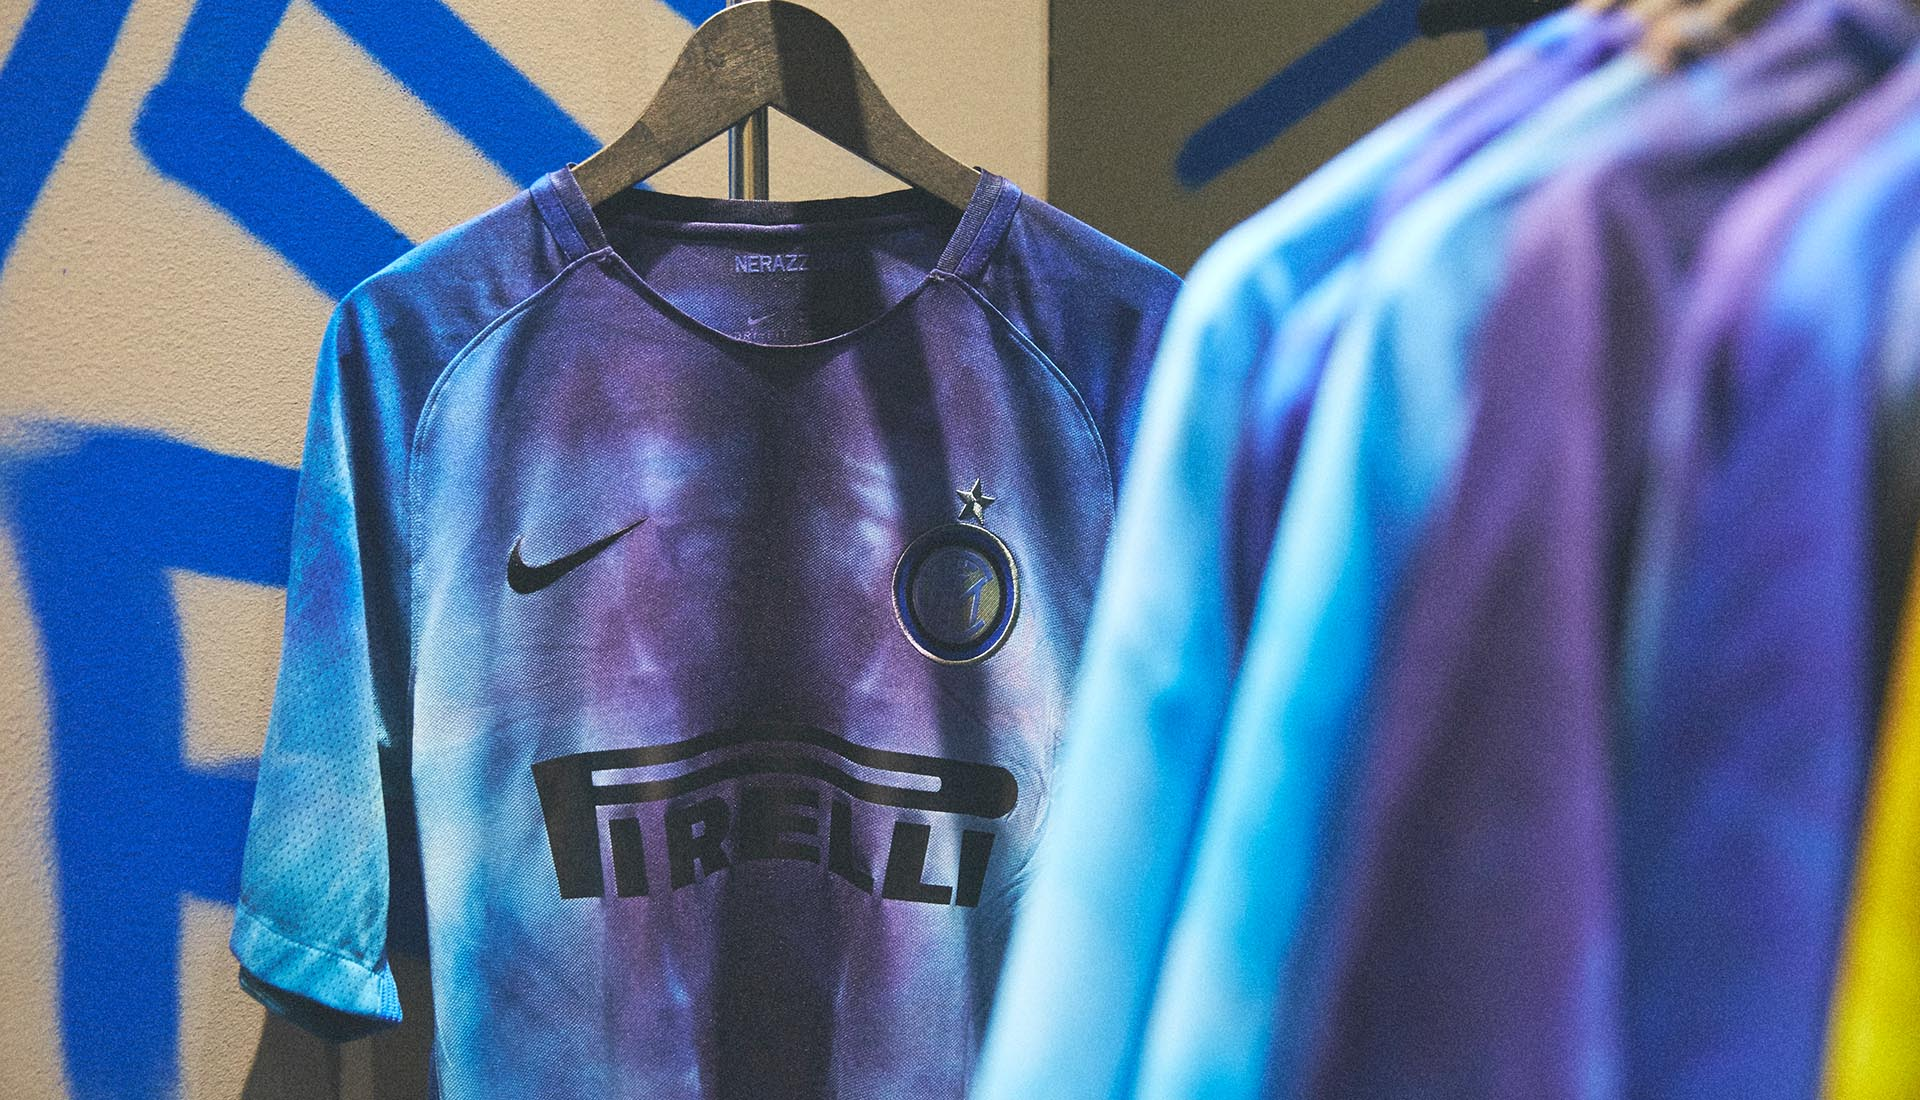 977e9b7c4 Nowhere FC x Inter Milan Nike Soccerbible 0061 nowhere fc x inter milan  5.jpg